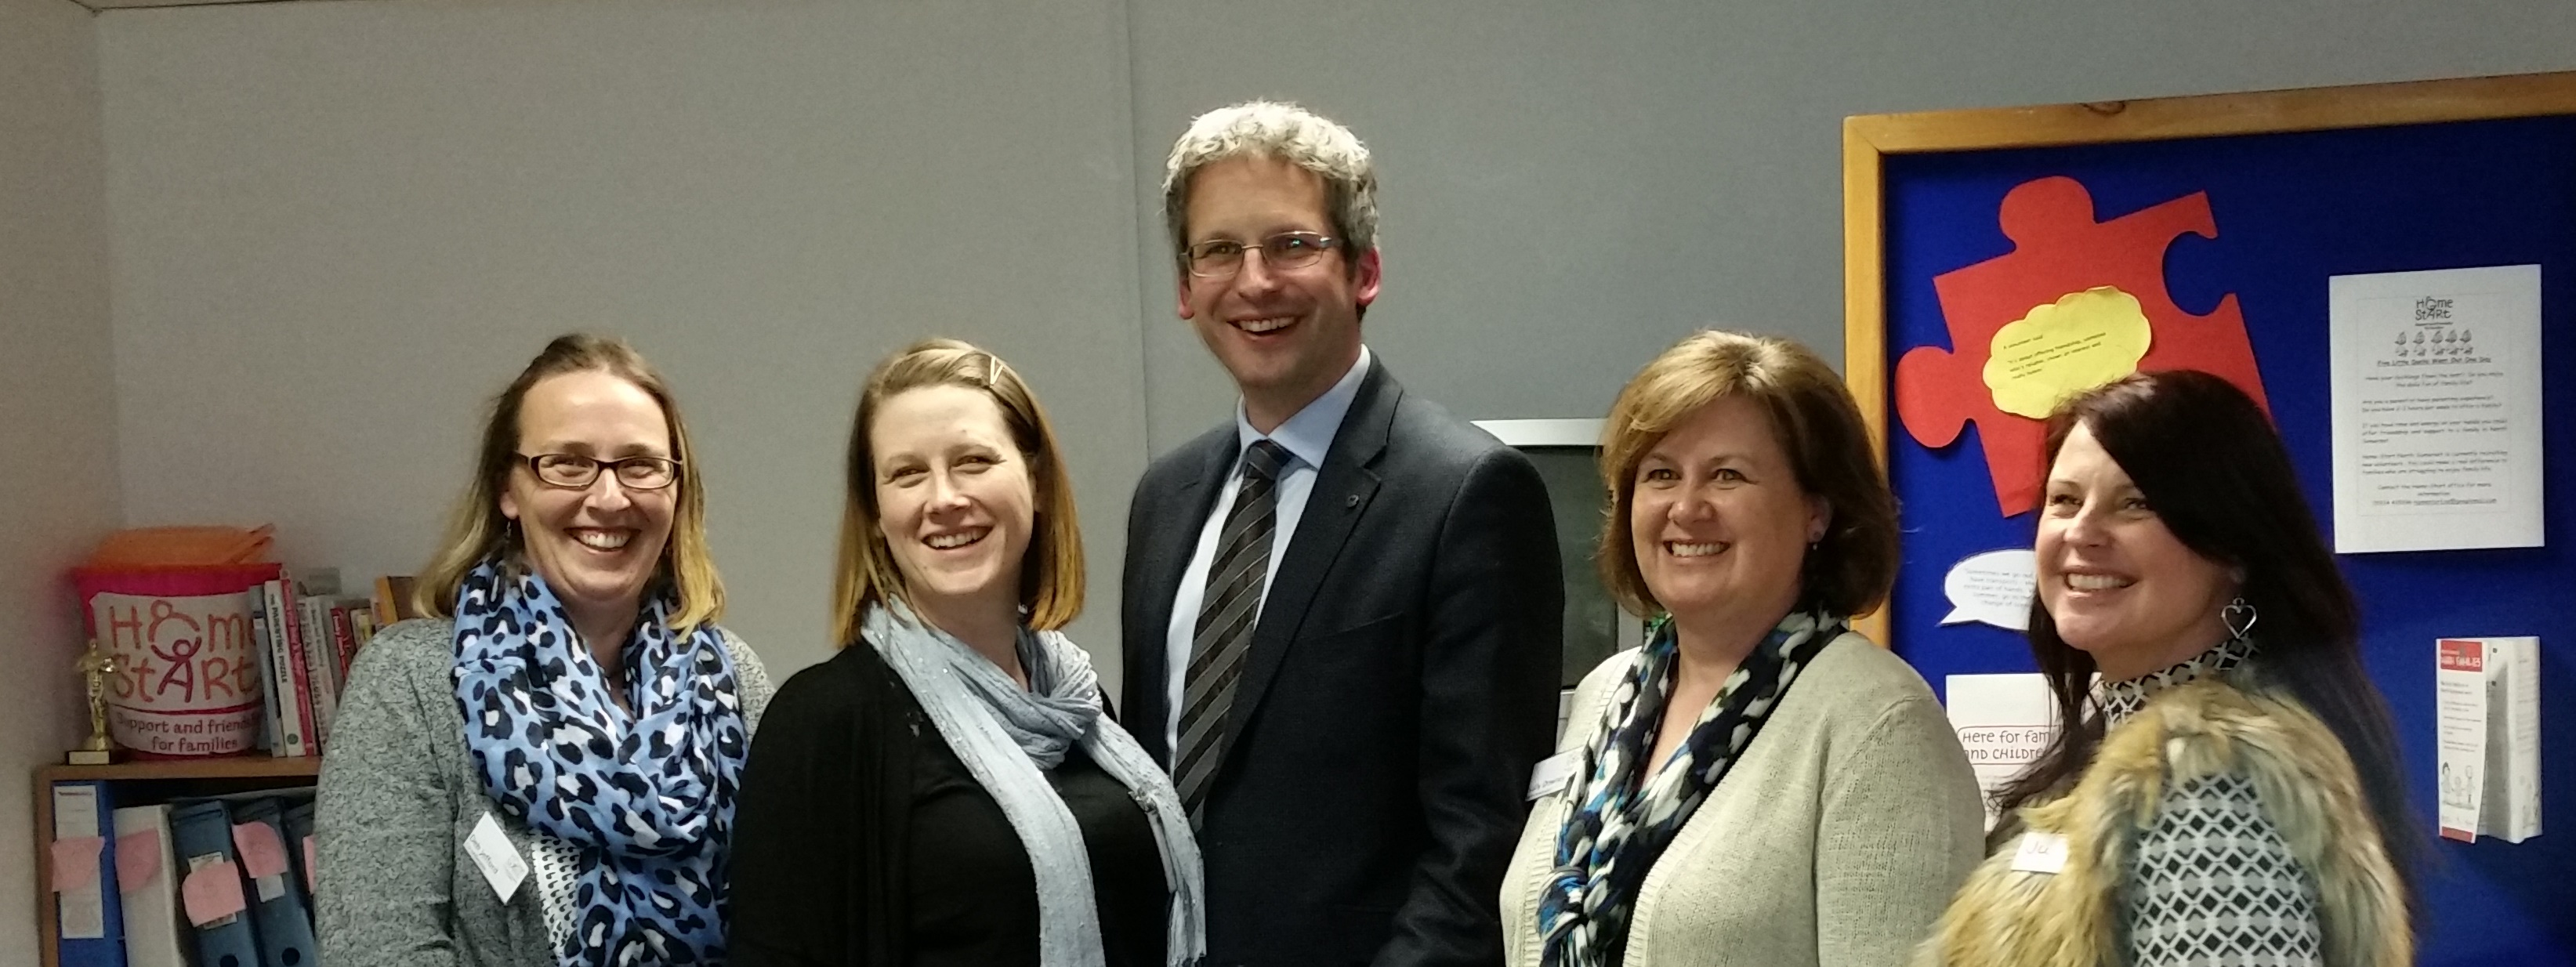 Rob Parkinson and HSNS Staff